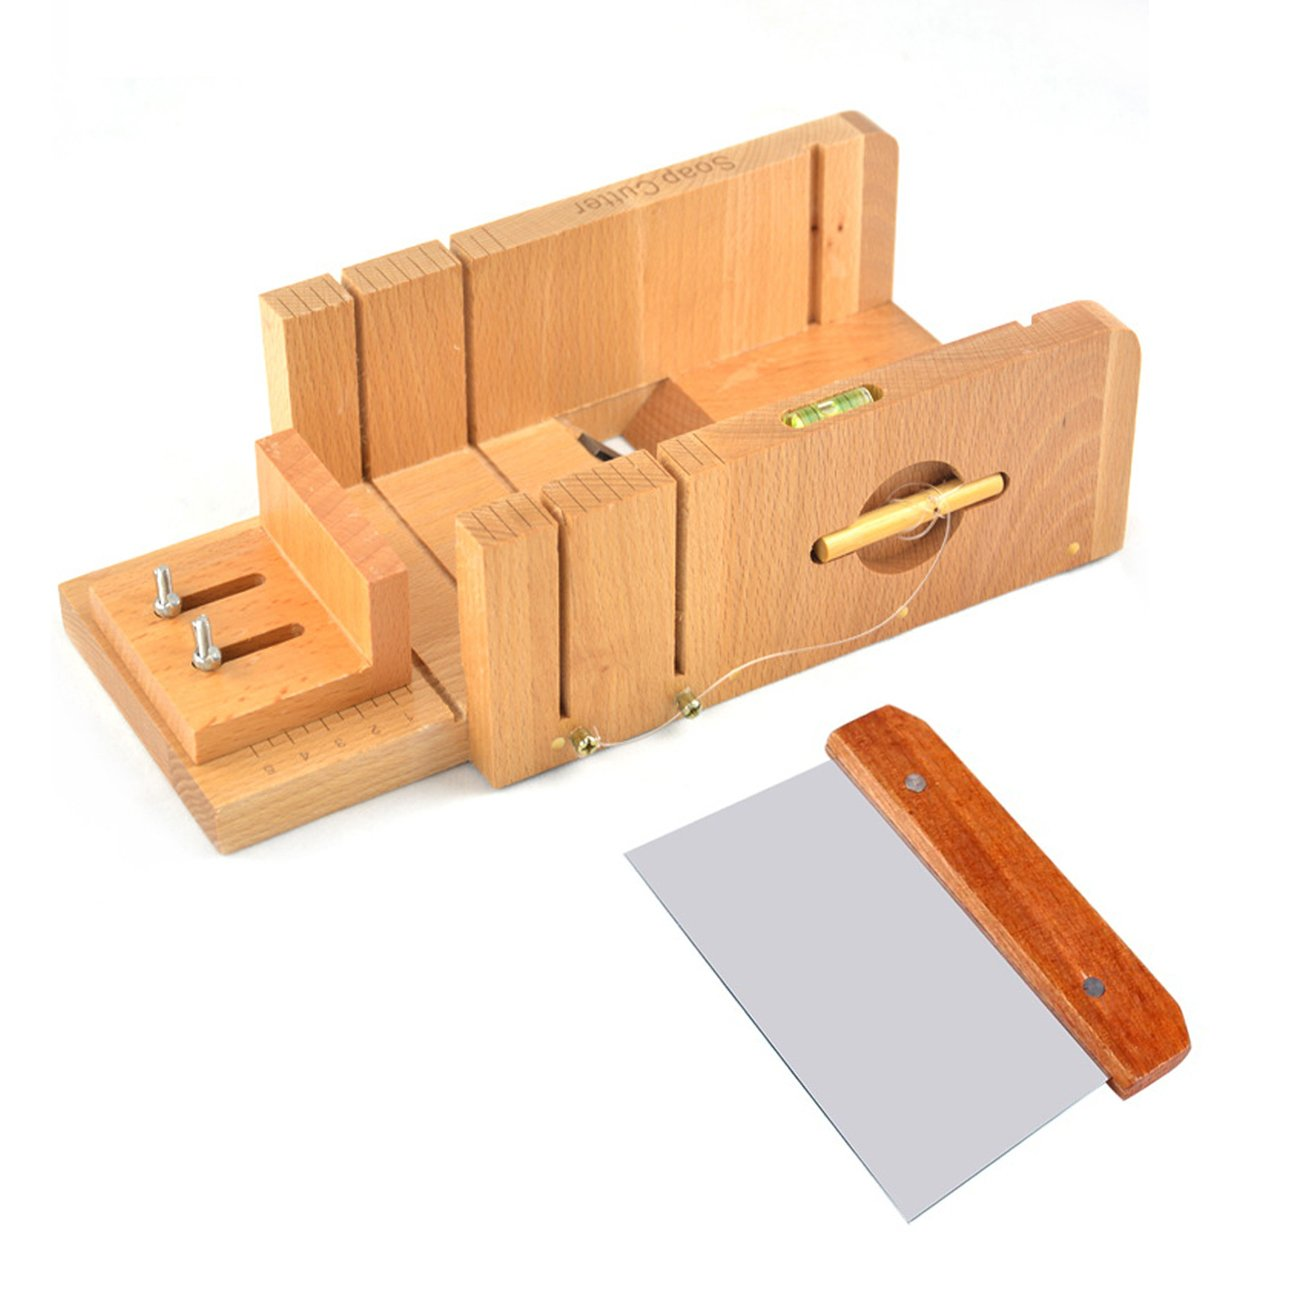 Ogrmar Multi-function Practical Adjustable Bamboo Soap Cutter Soap Making Tools with Soap Beveler / Planer Set (Brown)